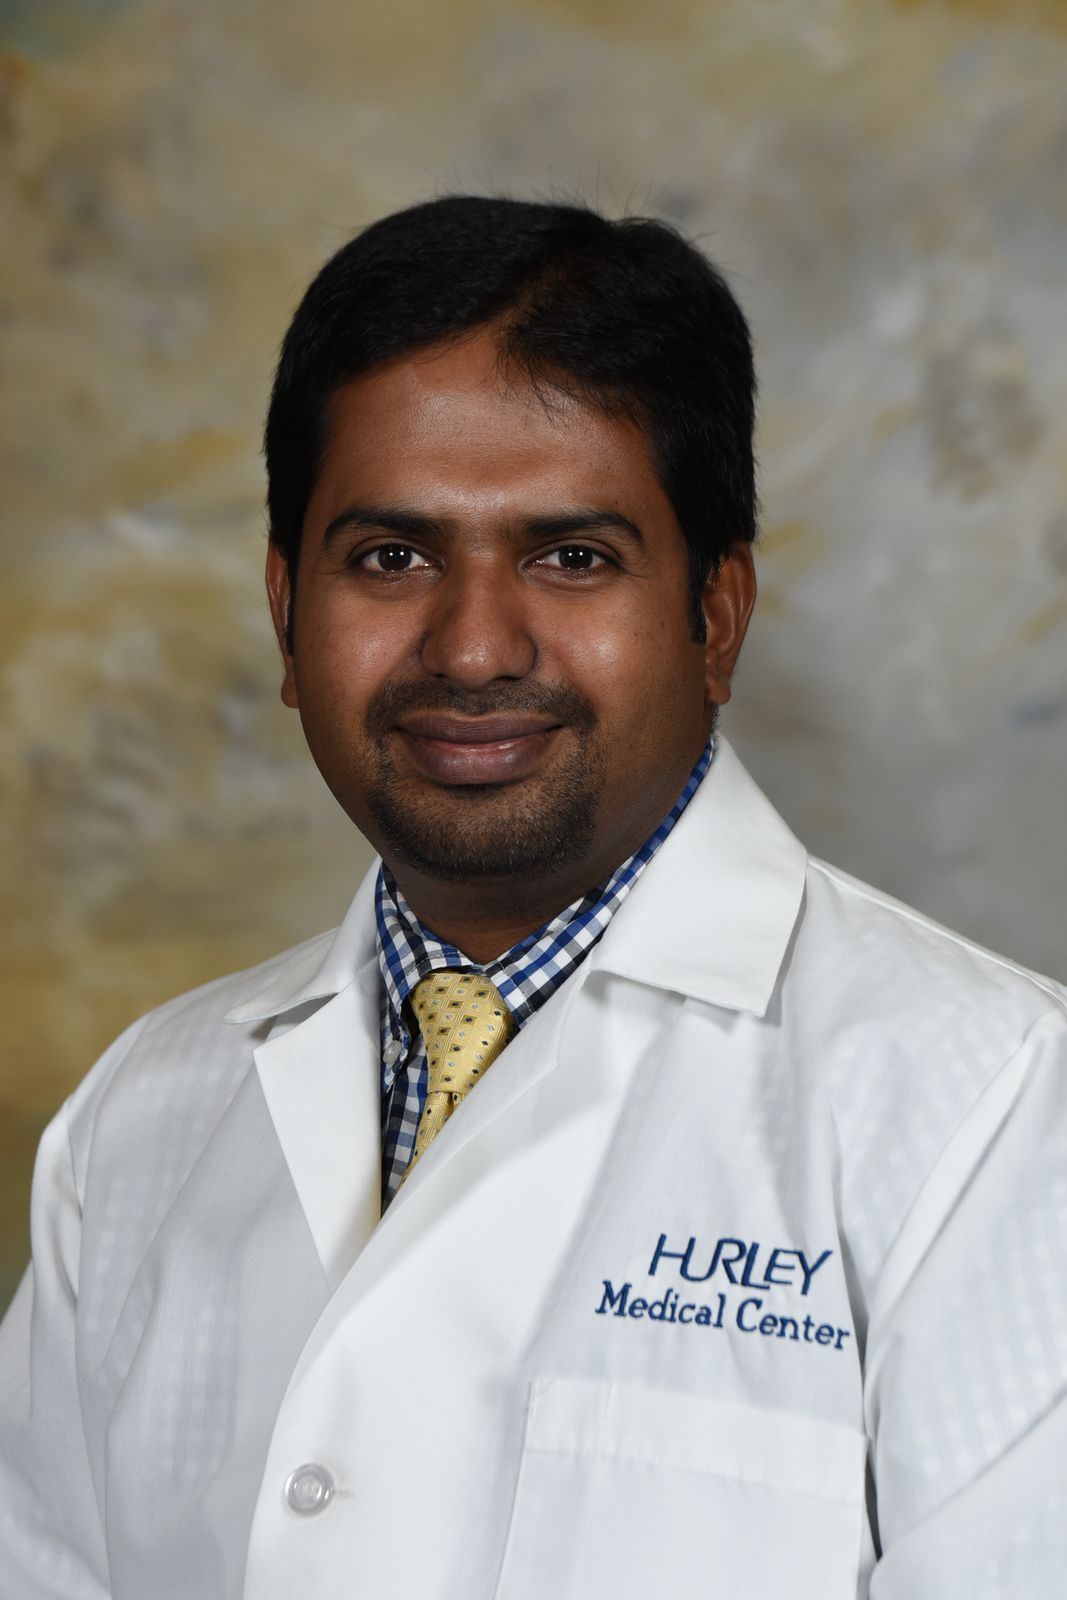 Hurley Medical Center | Arul Chandran